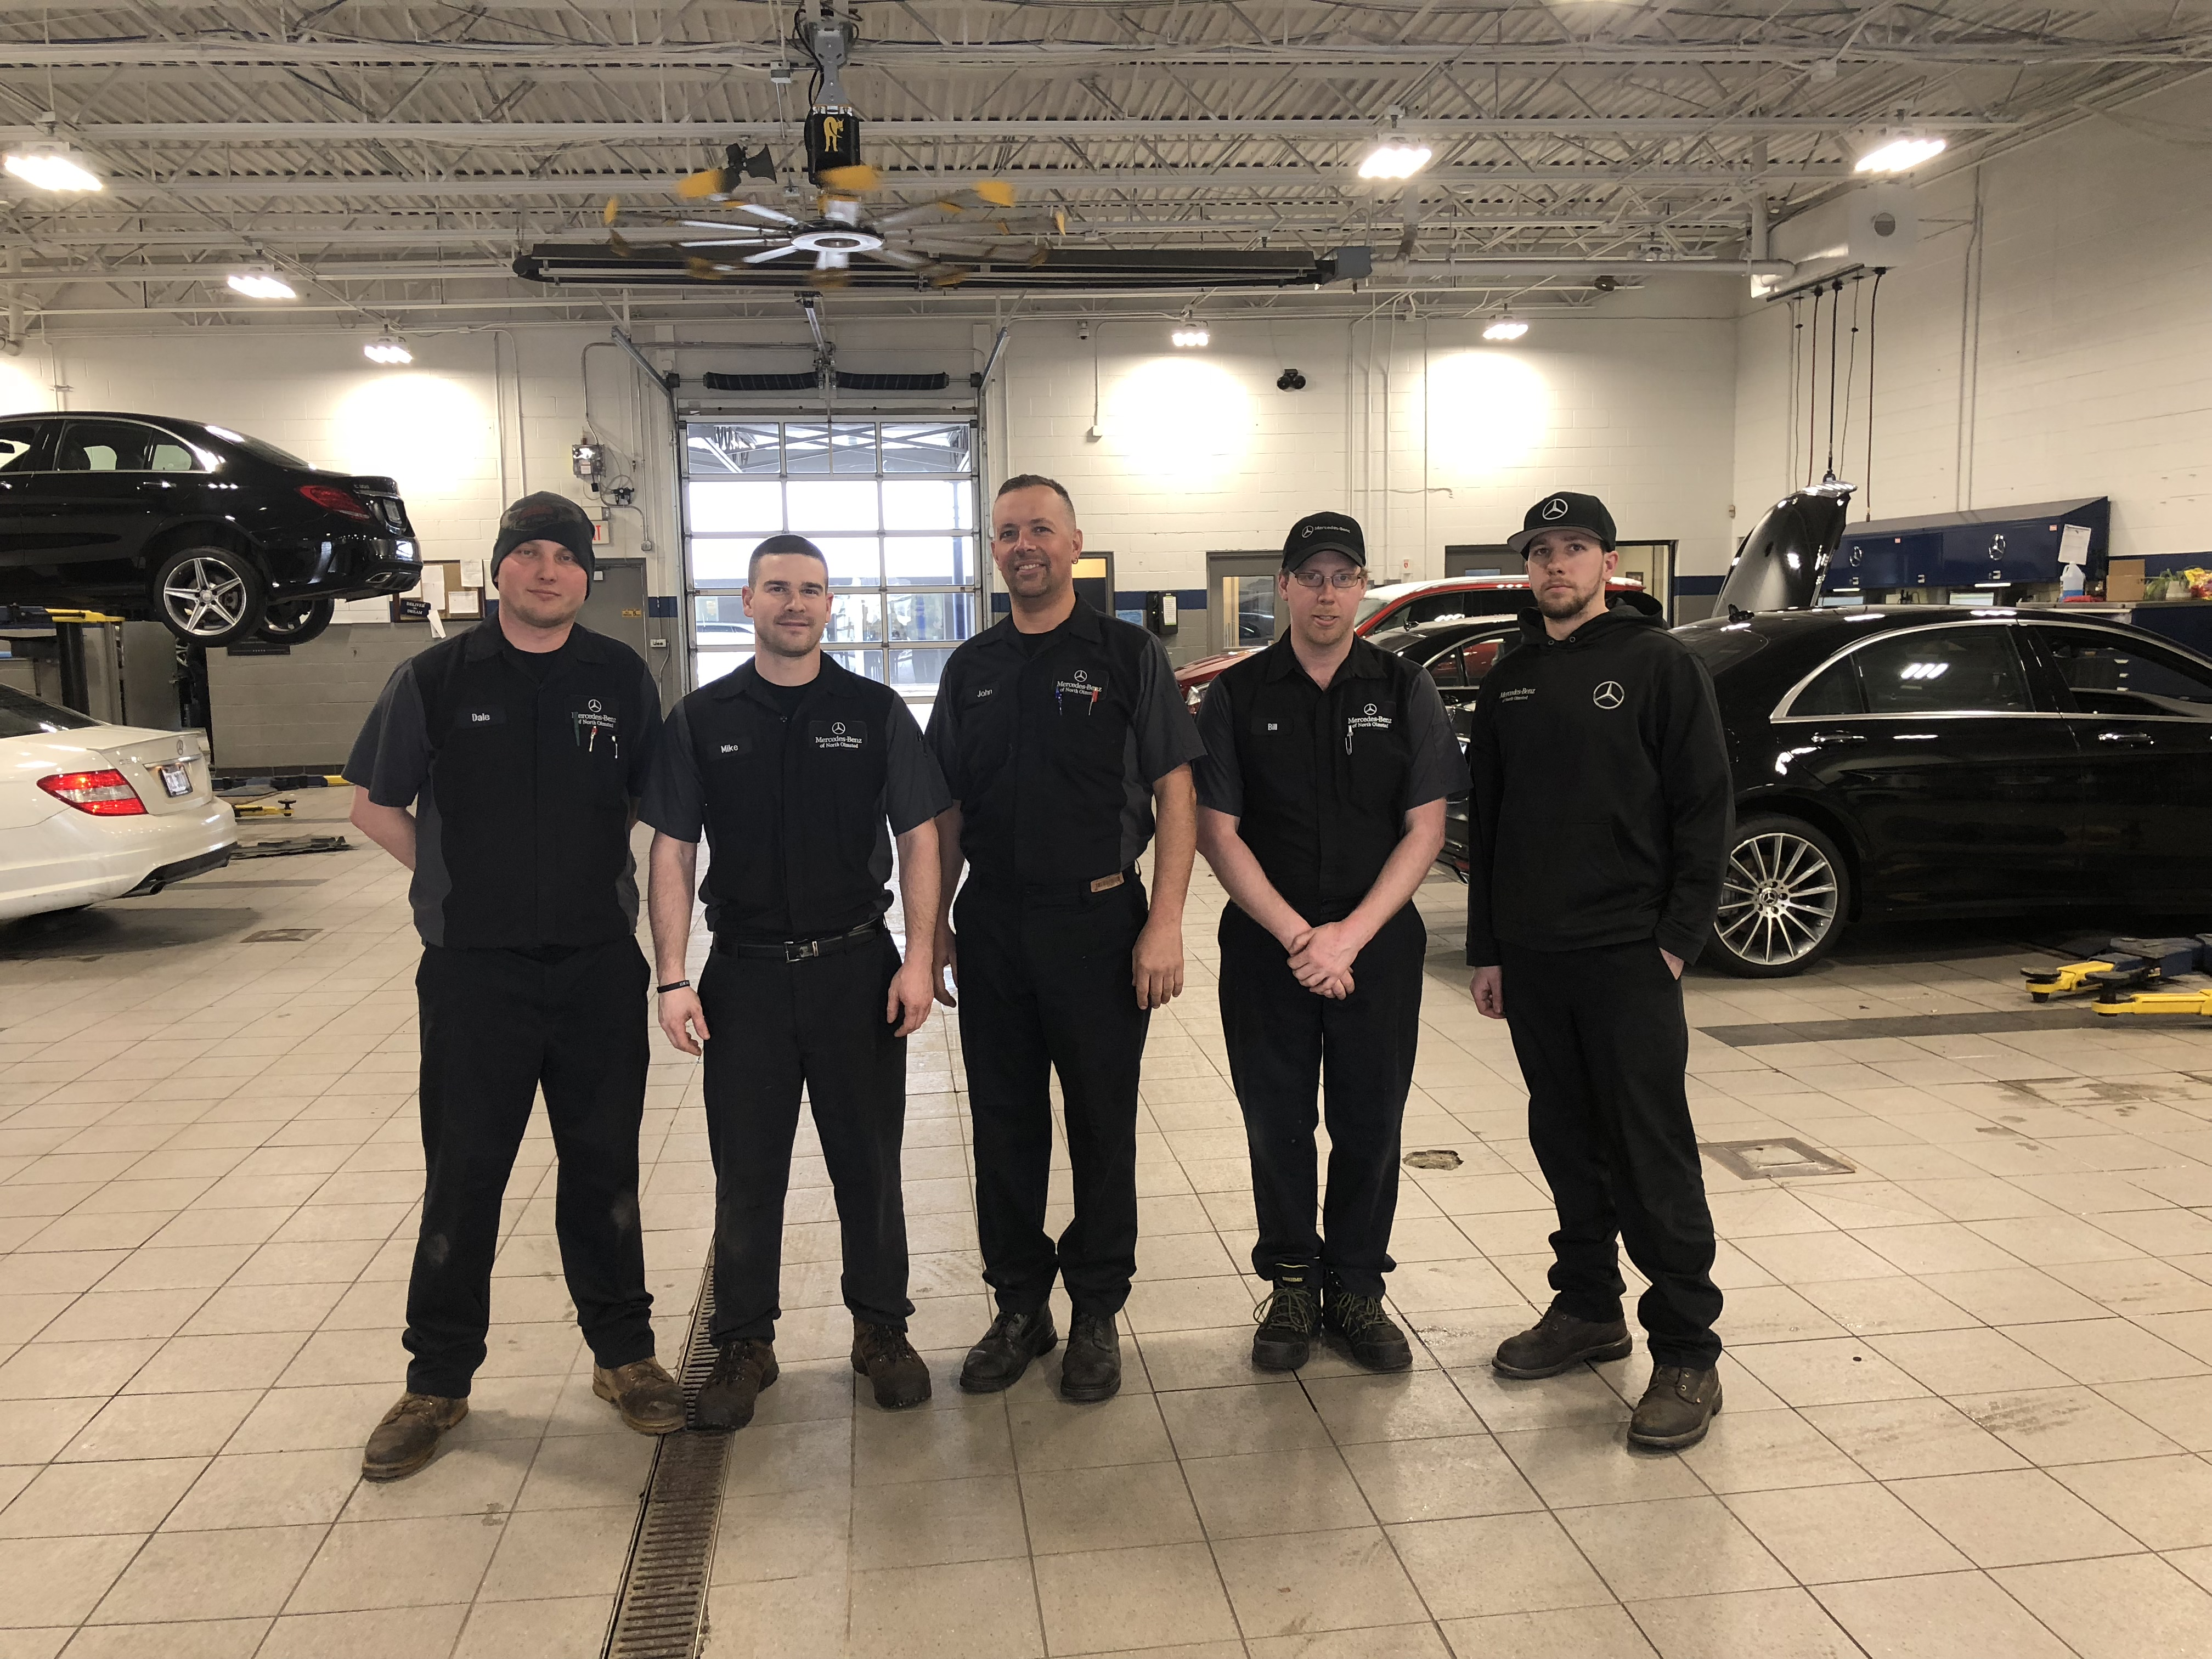 Mercedes benz of north olmsted hits master technician for Mercedes benz of north olmsted service